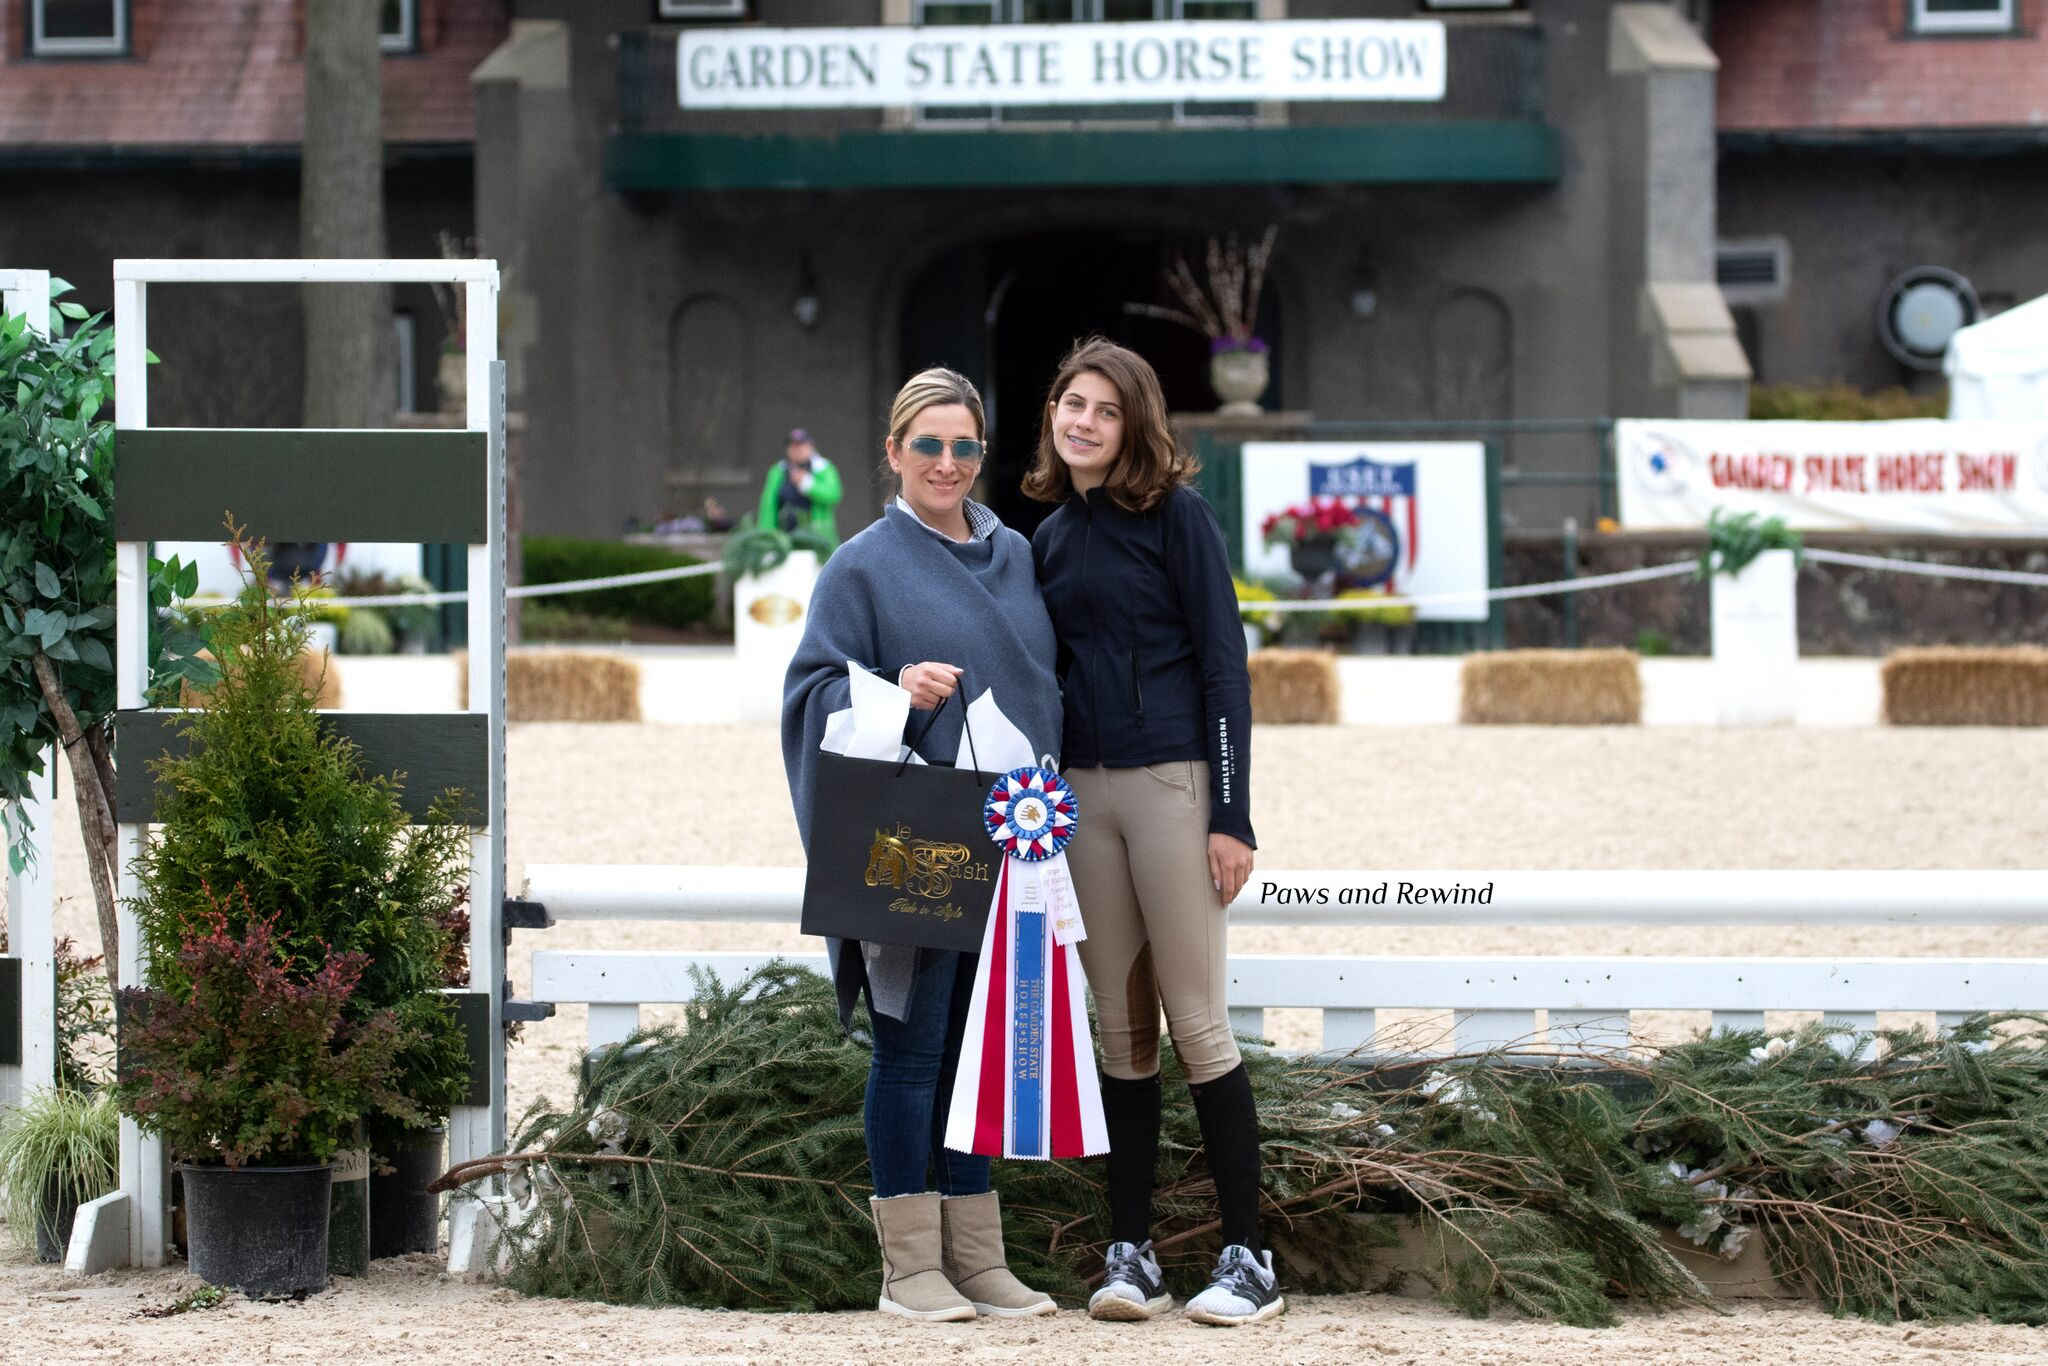 Maison Mcintyre also won the Le Fash Style of Riding Award, presented by Arianna Vastino. Photo by Paws and Rewind